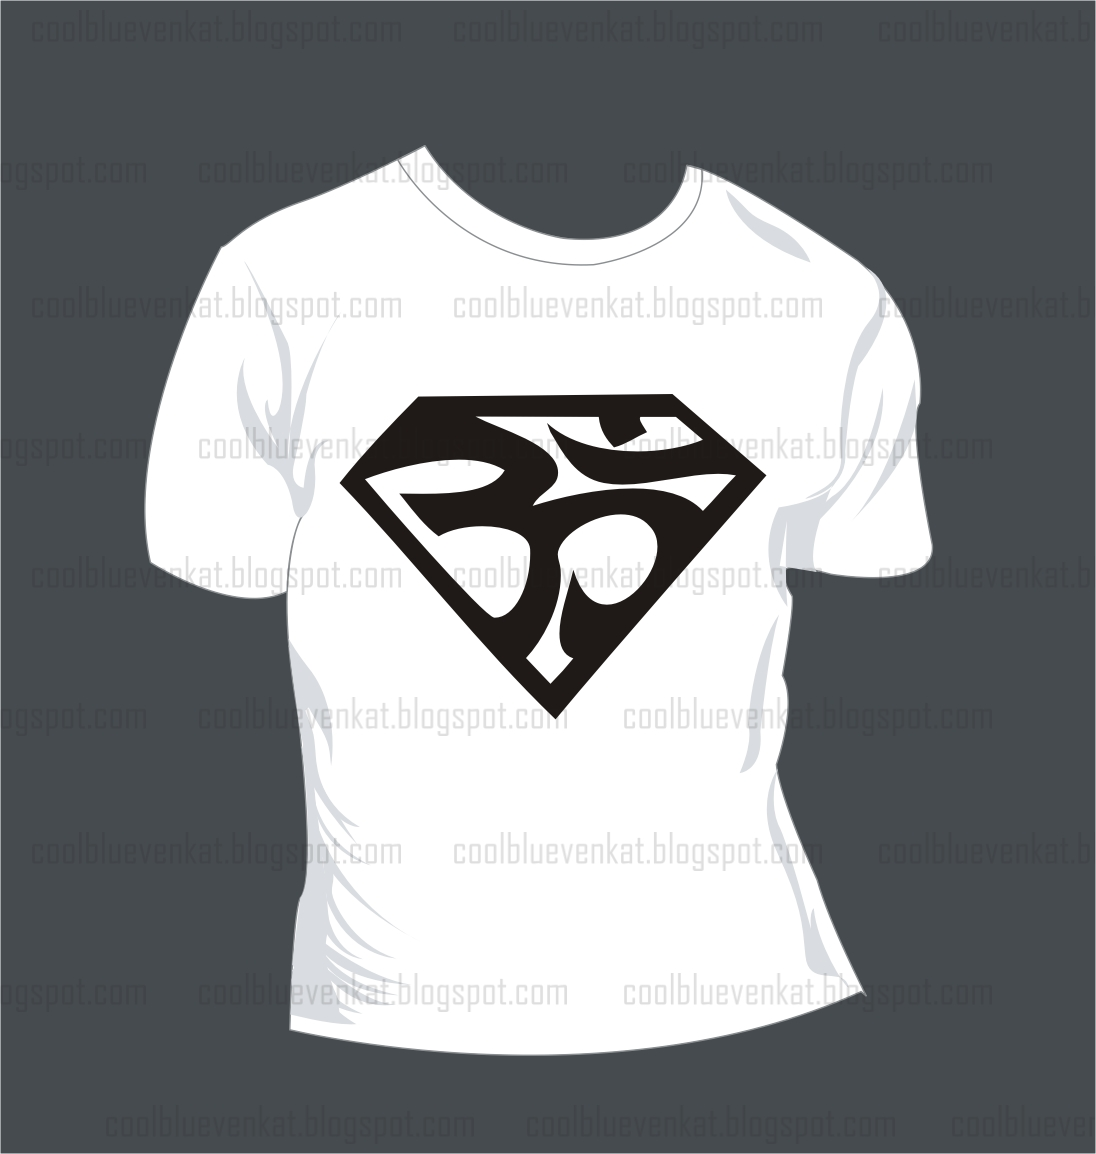 Volleyball T Shirt Ideas To Download Volleyball T Shirt Ideas Just